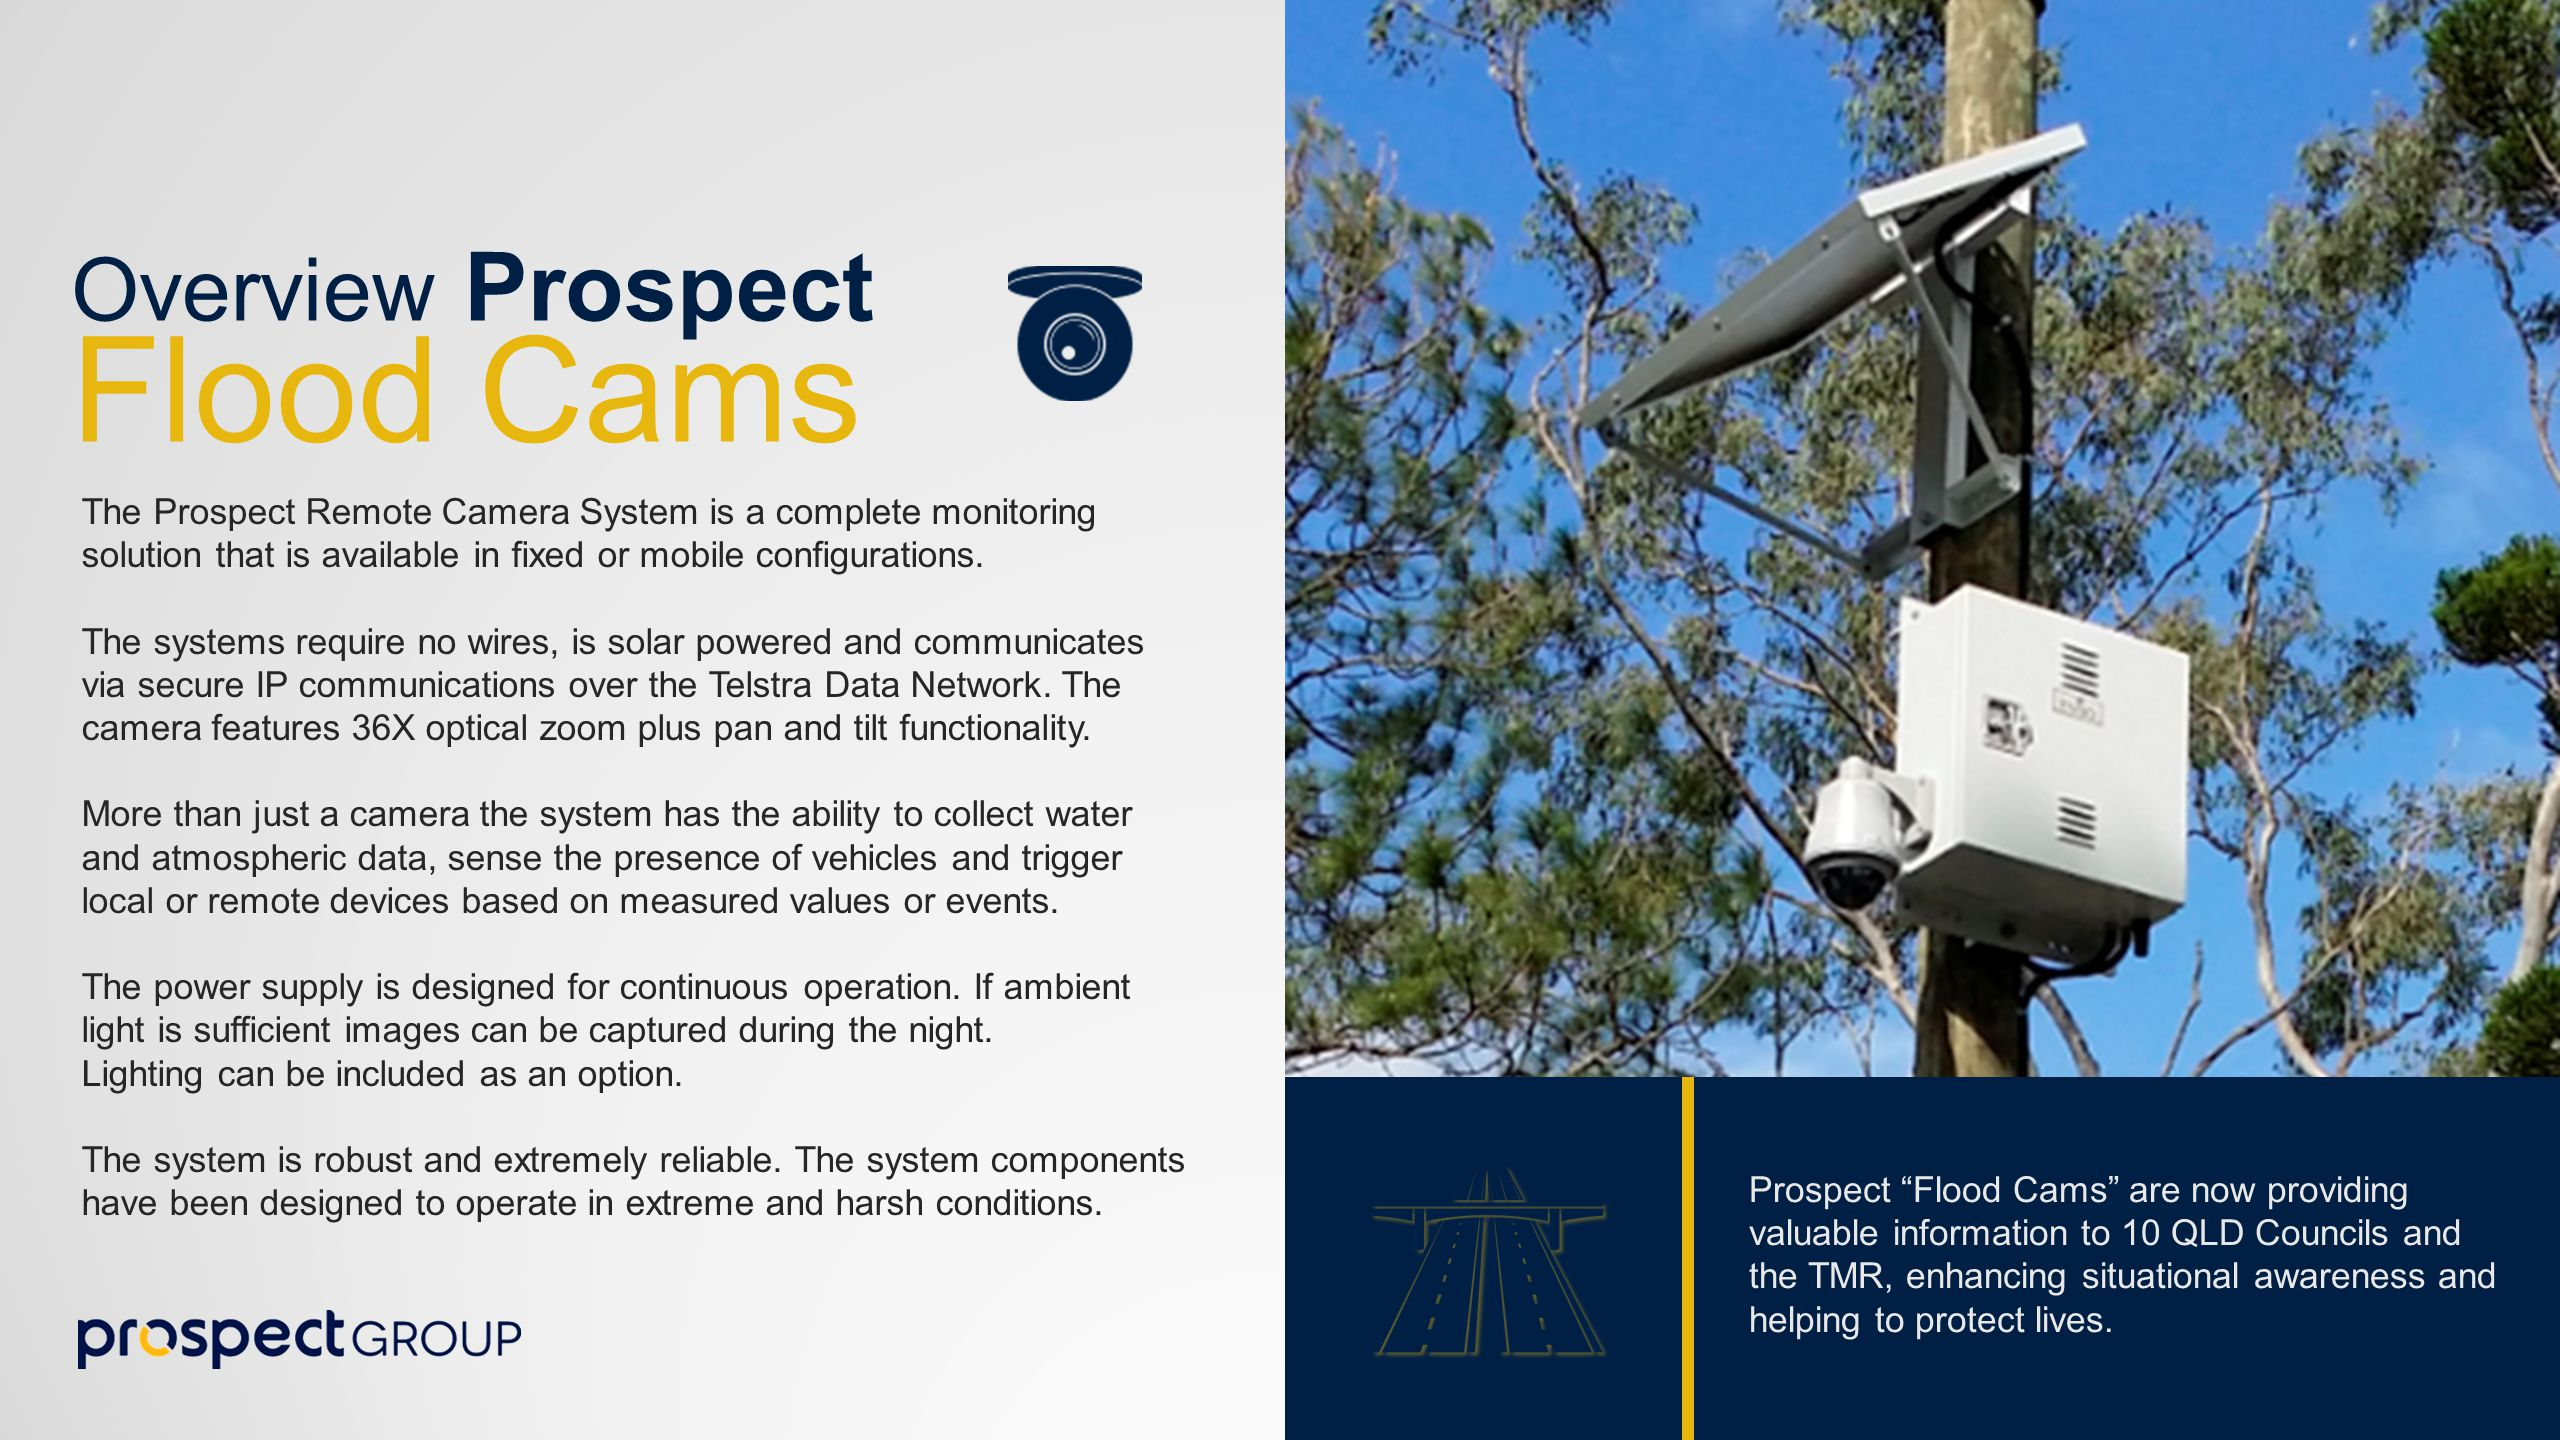 01 Overview Prospect Flood Cams The Prospect Remote Camera System is a complete monitoring solution that is available in fixed or mobile configurations.